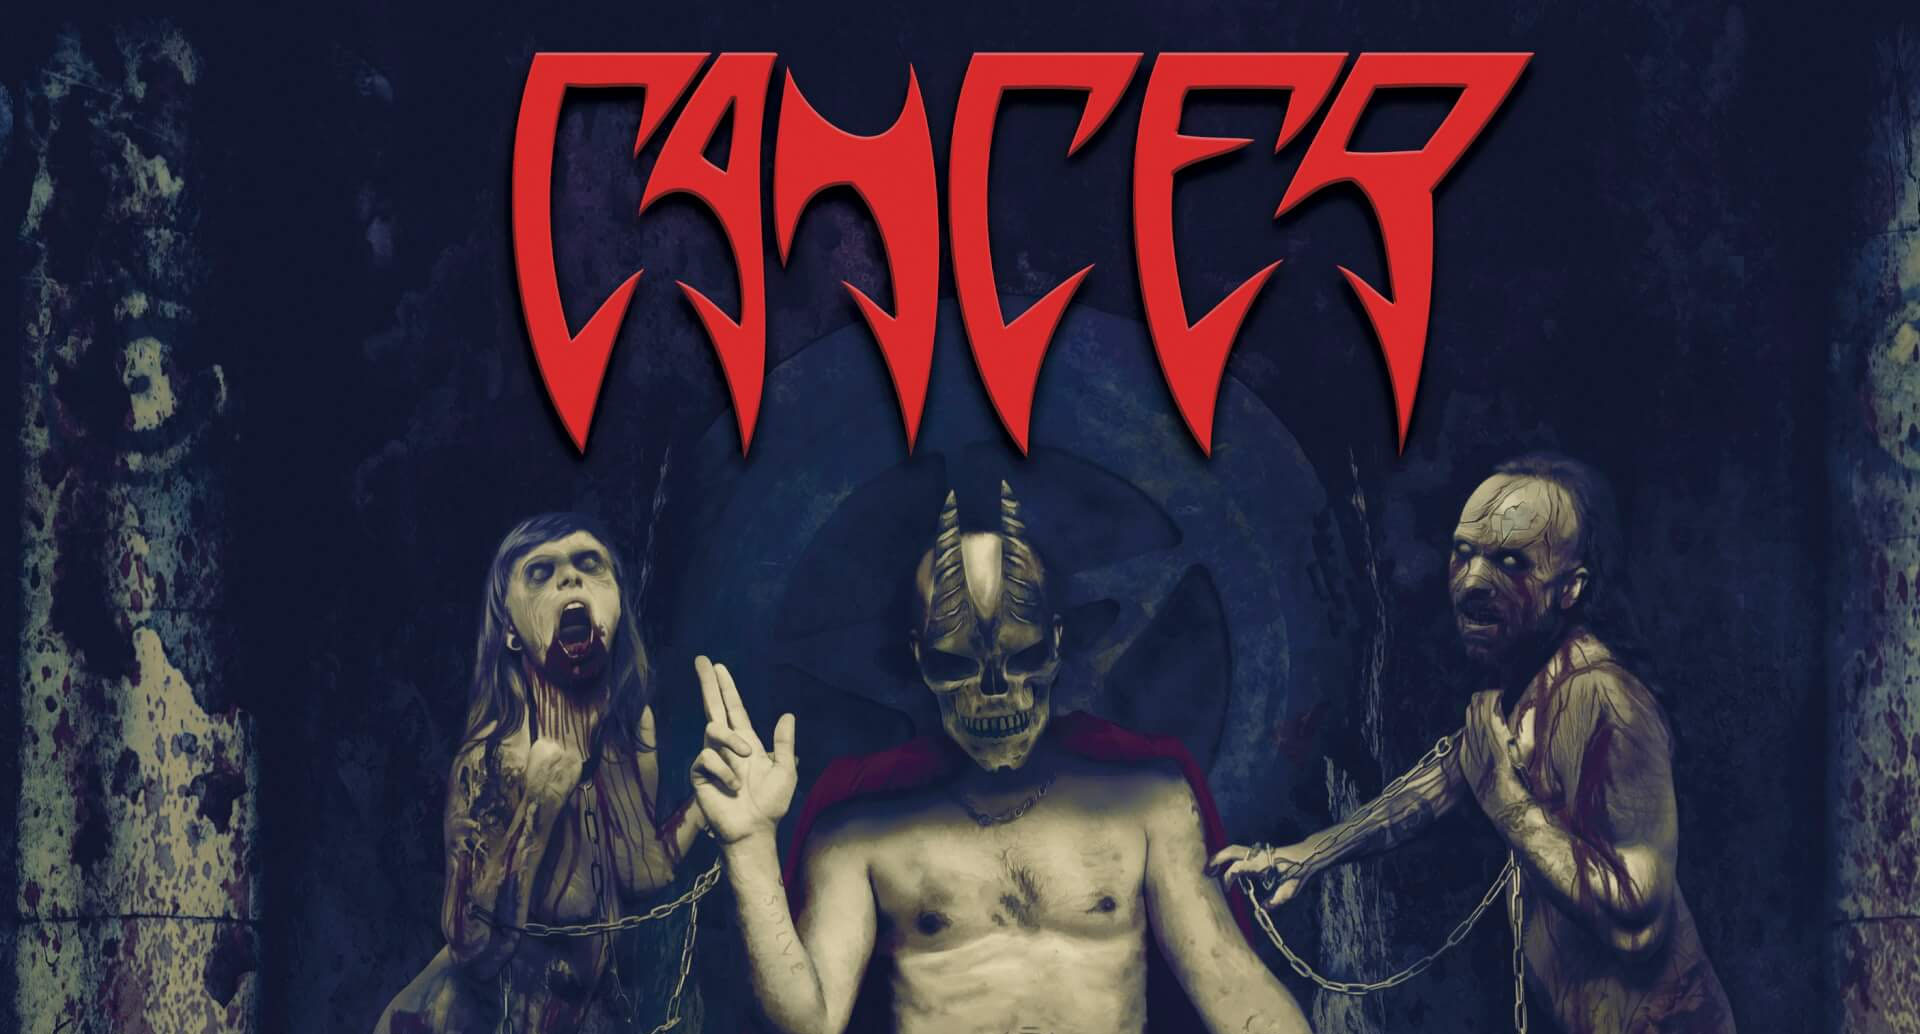 The UK legends of death metal Cancer announced for SG Metal Mayhem III